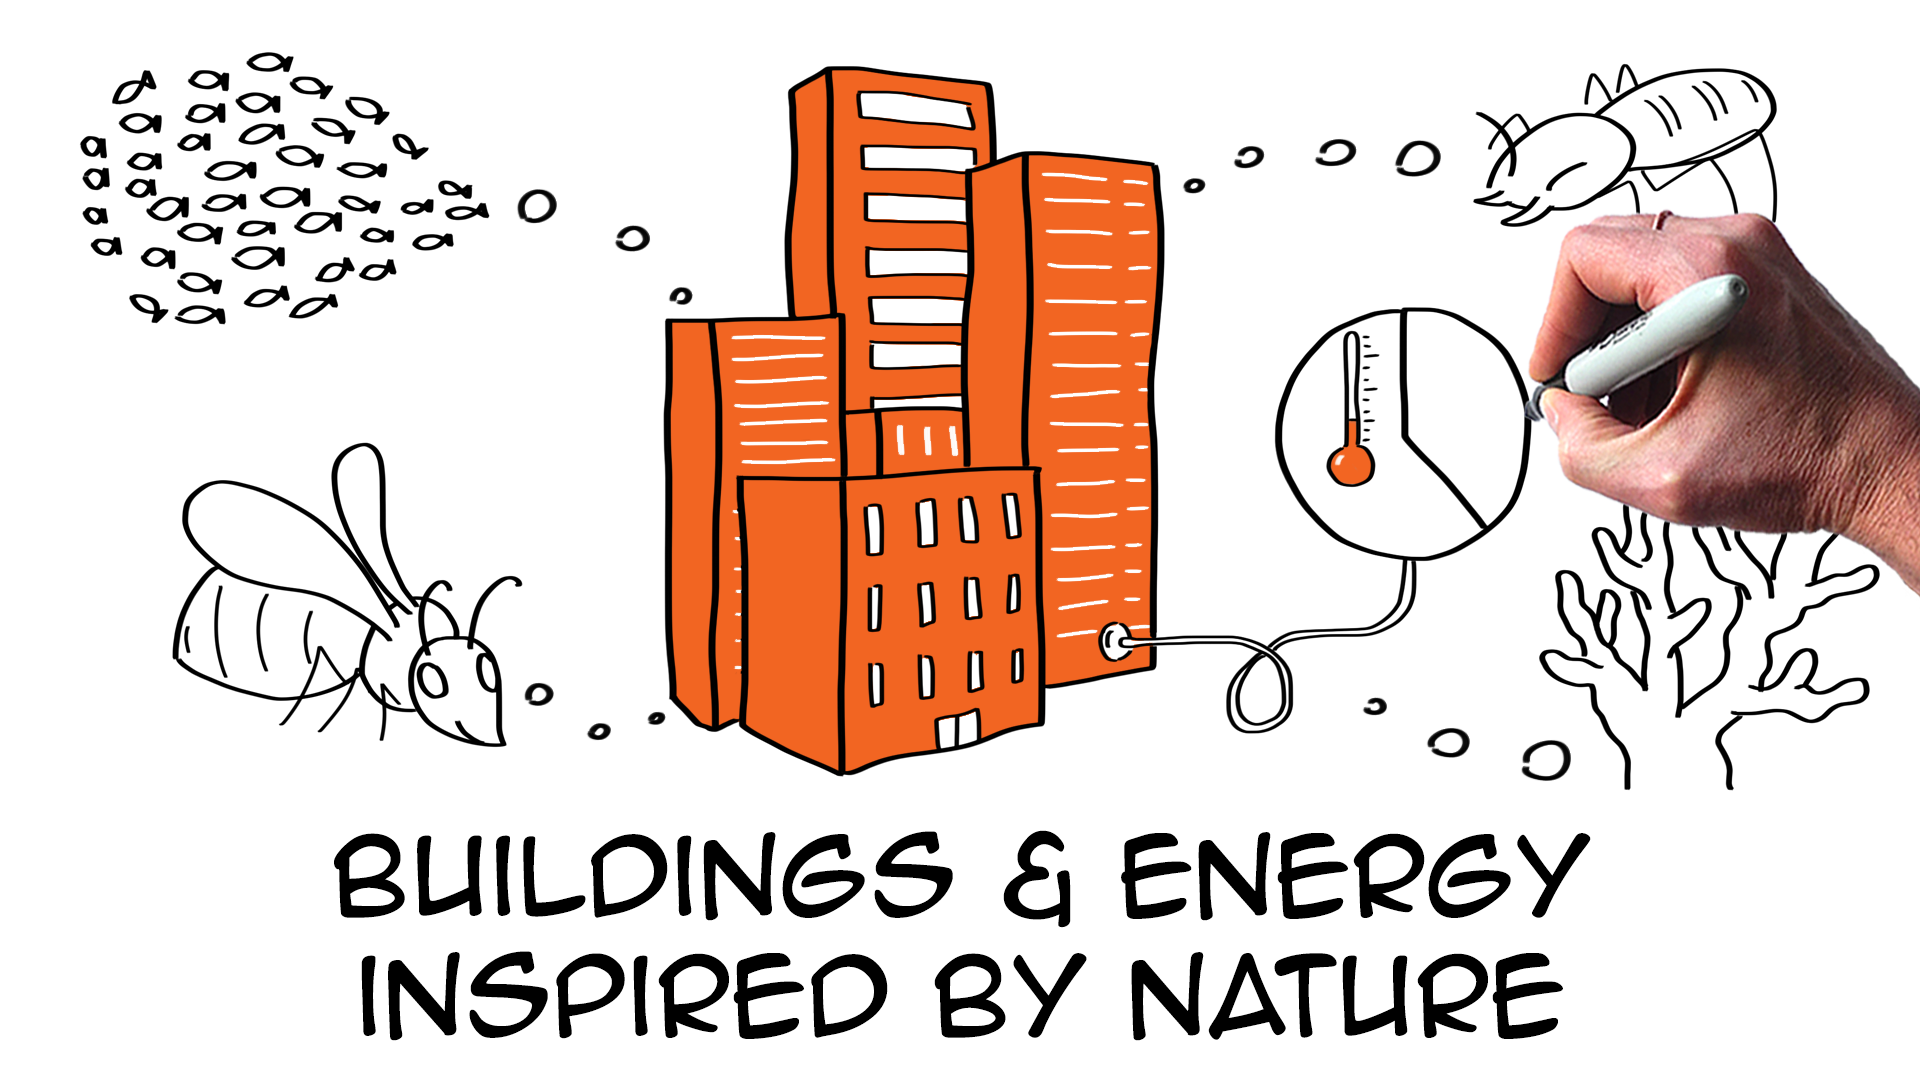 5 amazing biomimicry examples providing real sustainability solutions